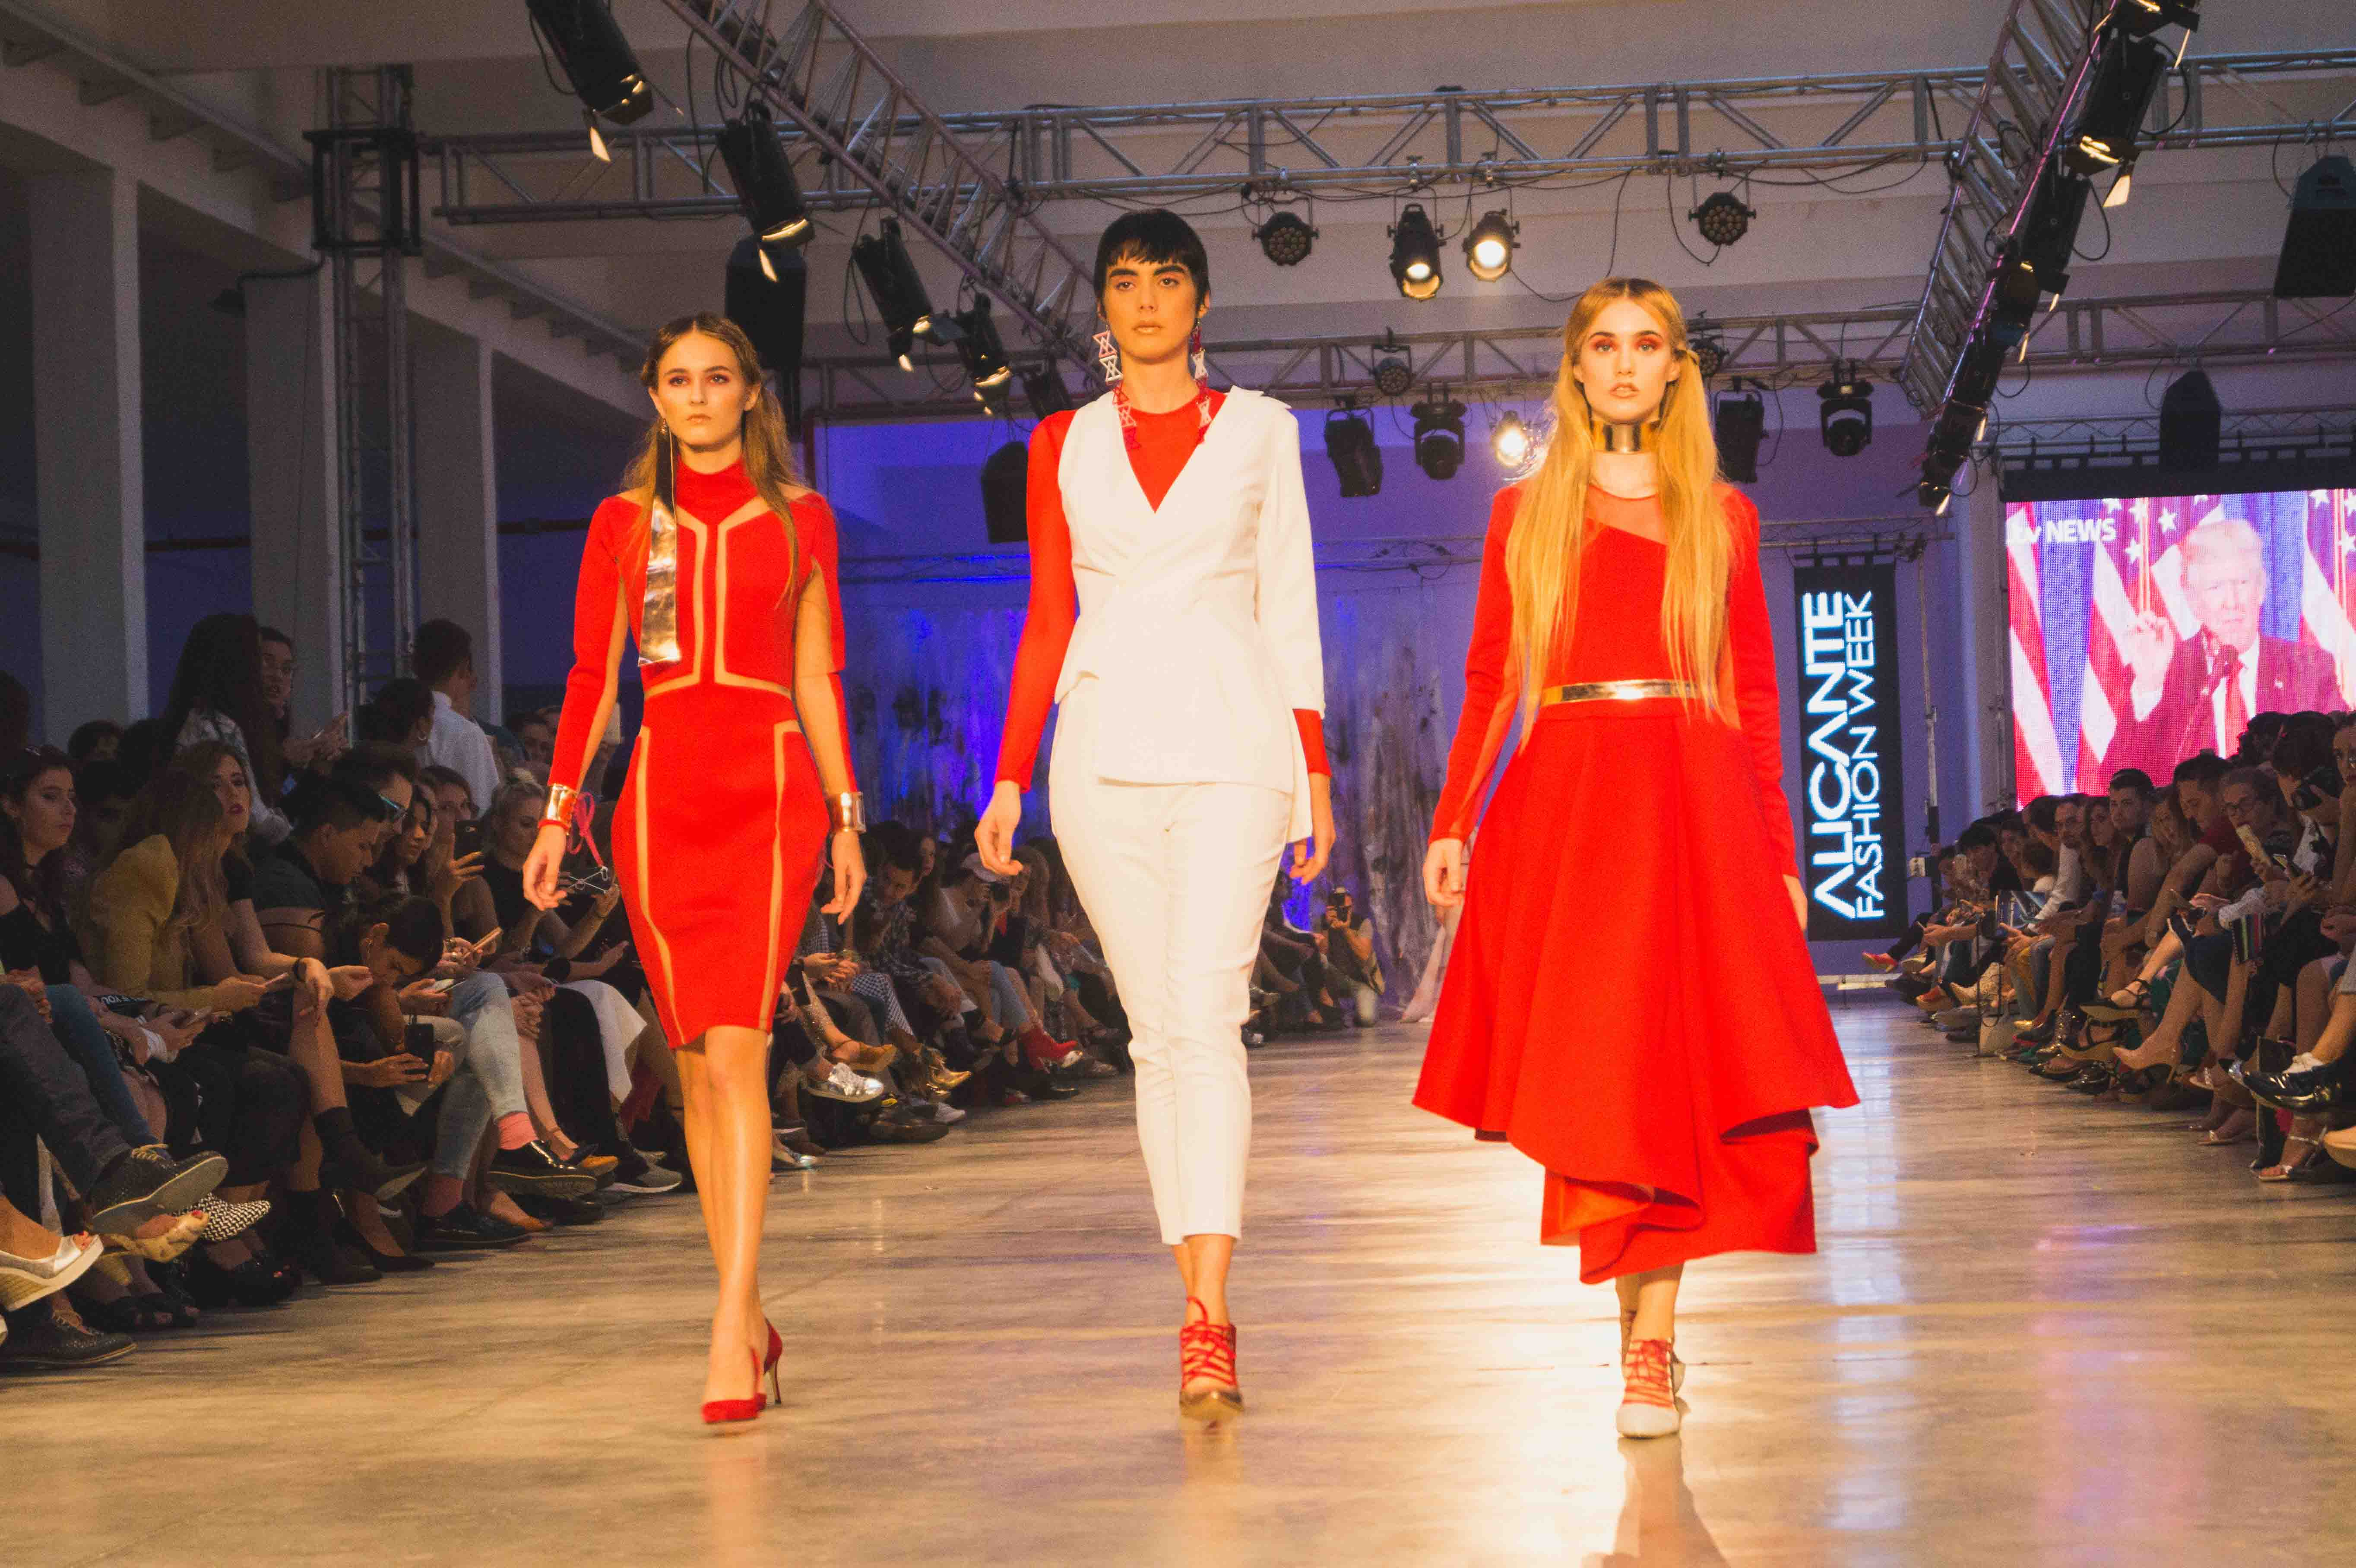 alicante-fashion-week-yvan-andreu-shit-magazine-victor-insomnia1